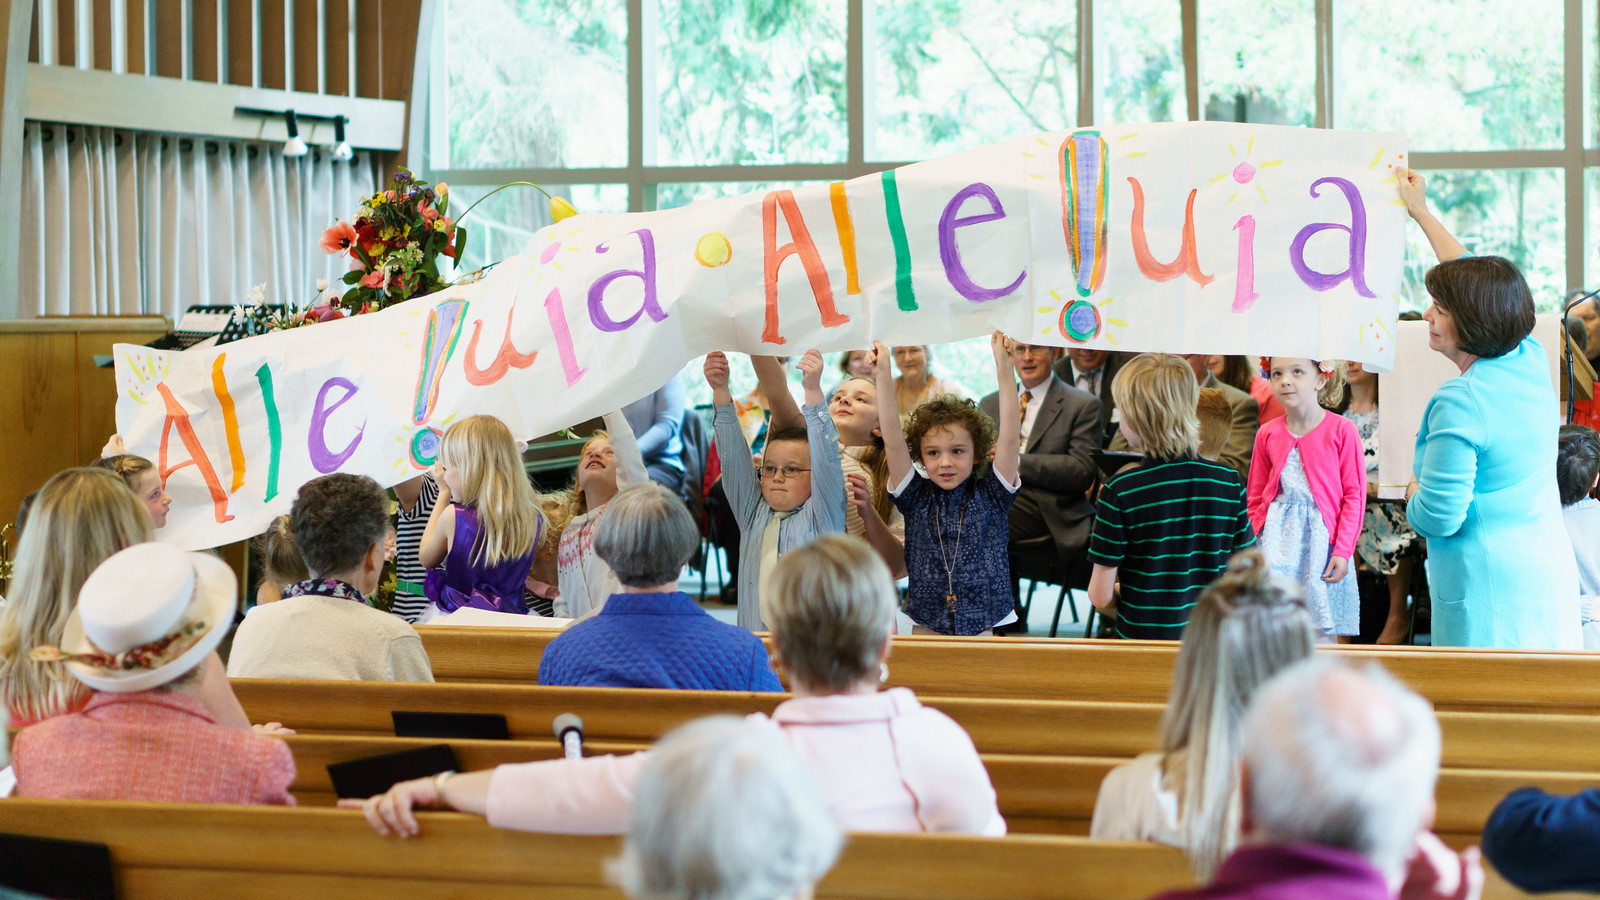 Sunday School at Fauntleroy Church